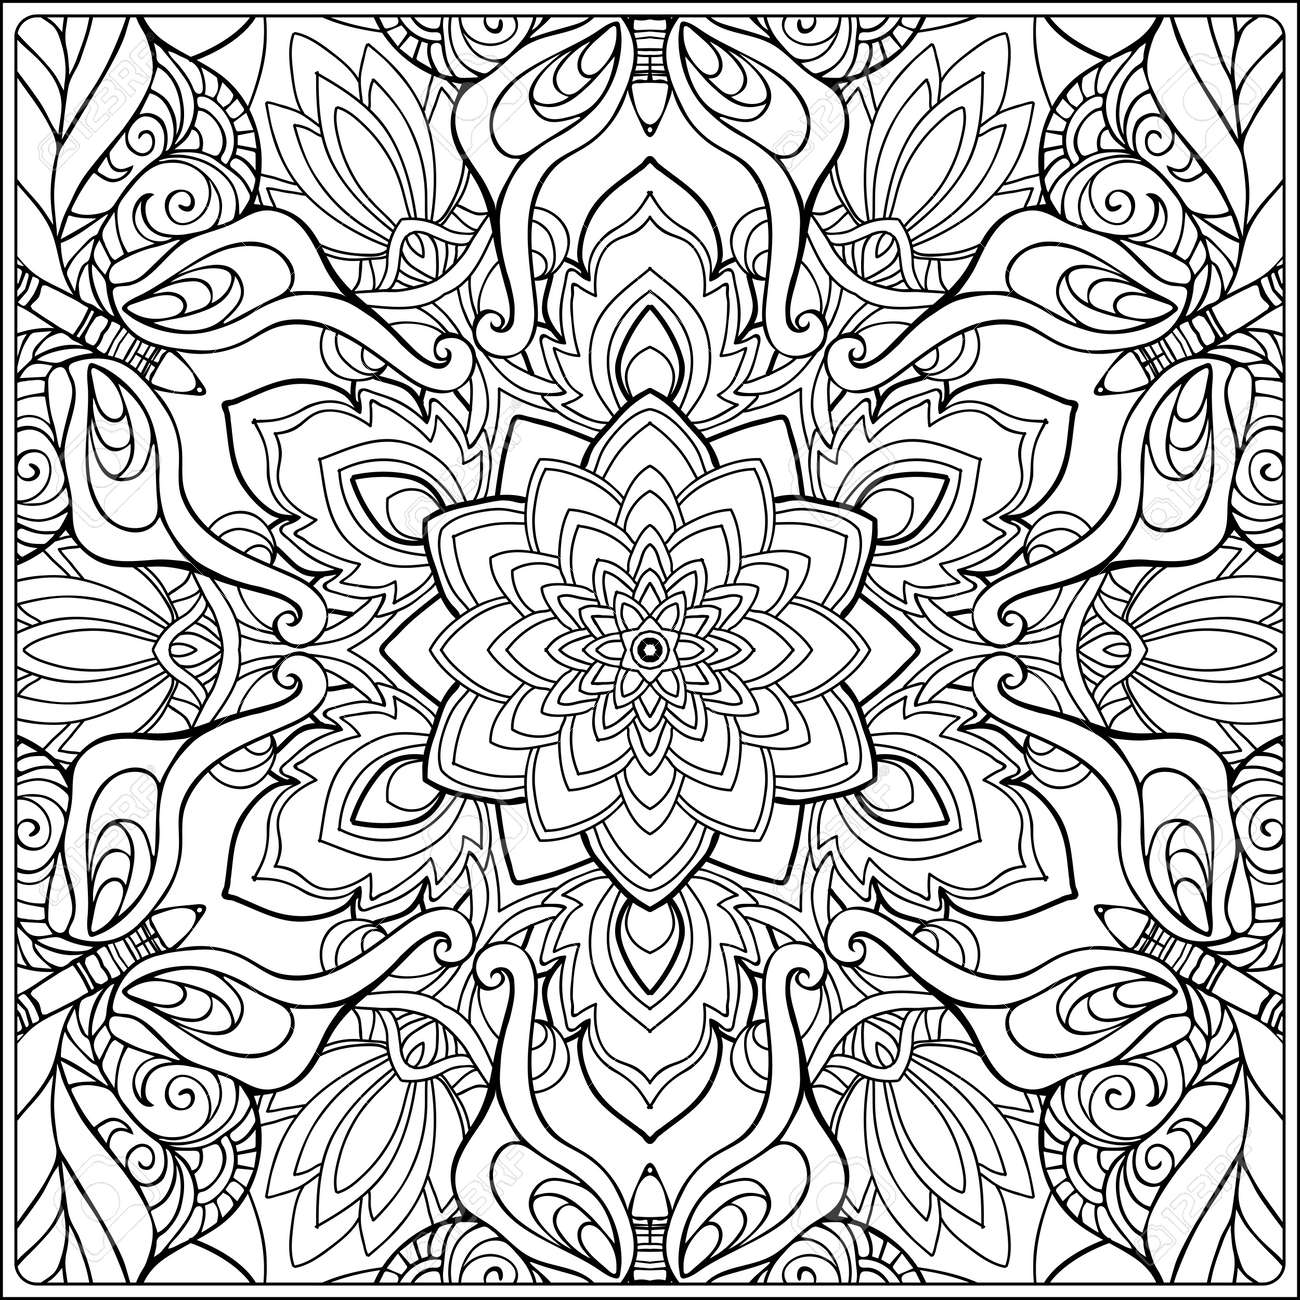 seamless pattern. Outline hand drawing. Good for coloring page for the adult coloring book. Stock vector illustration.Abstract vector decorative ethnic mandala black and white - 106545535